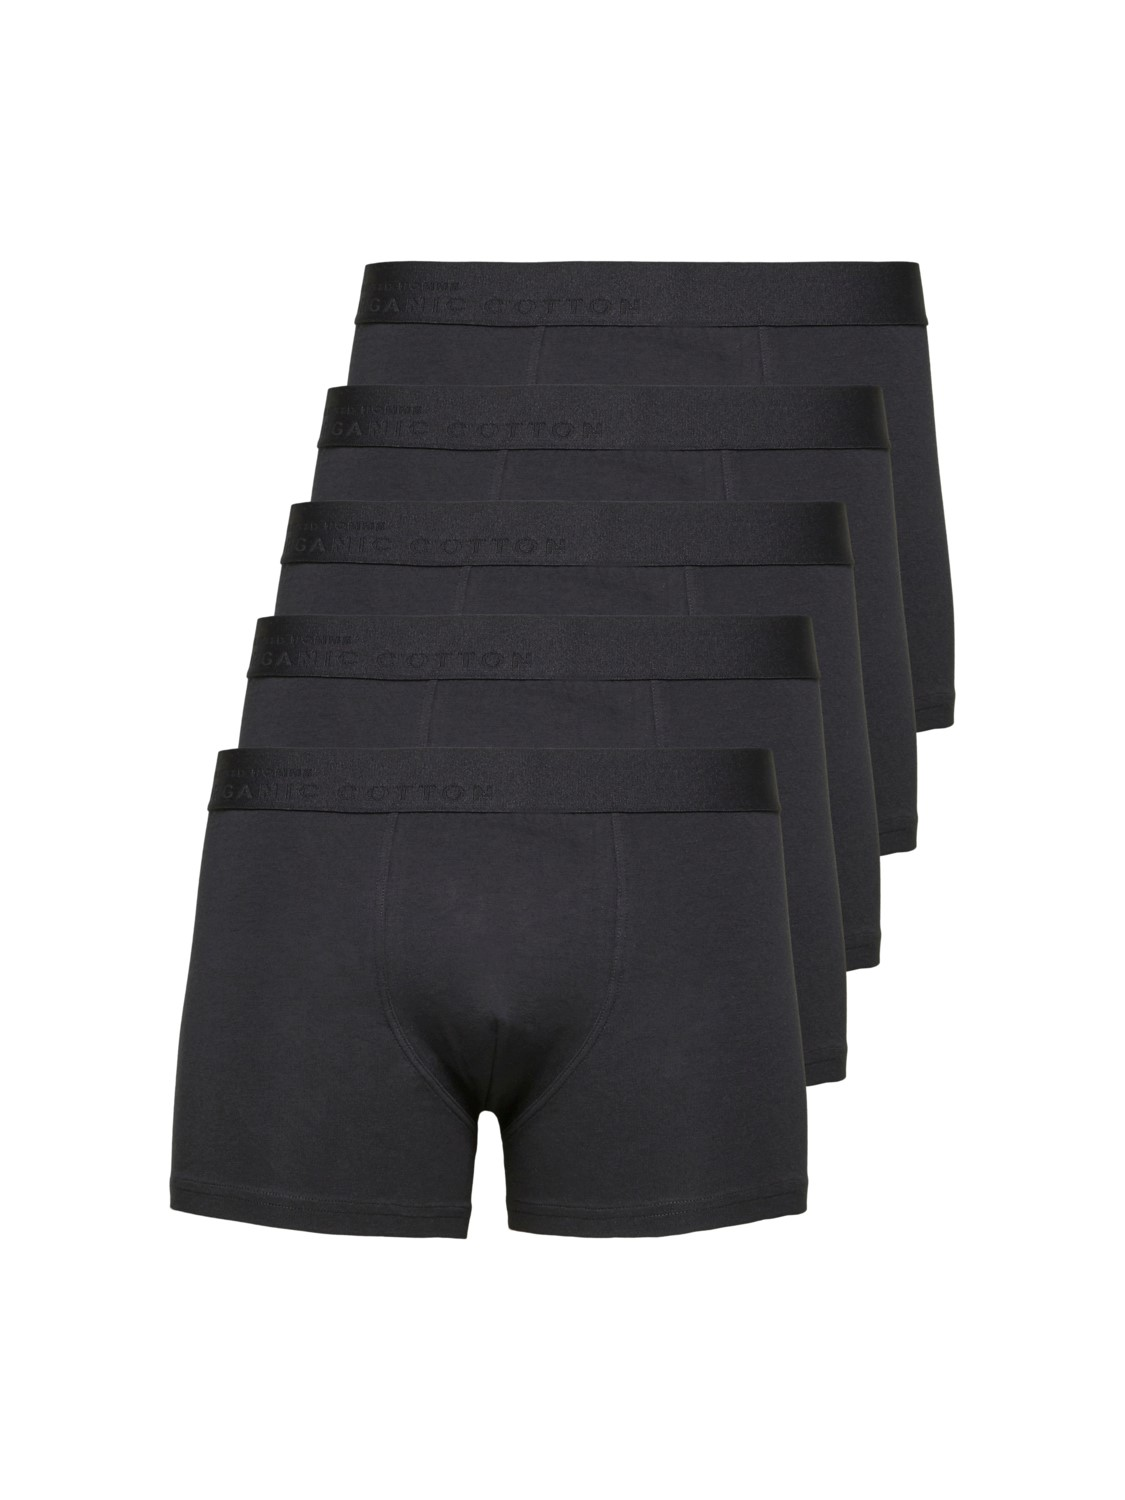 SELECTED 5 PACK BOXERSHORTS BLACK | GATE 36 Hobro